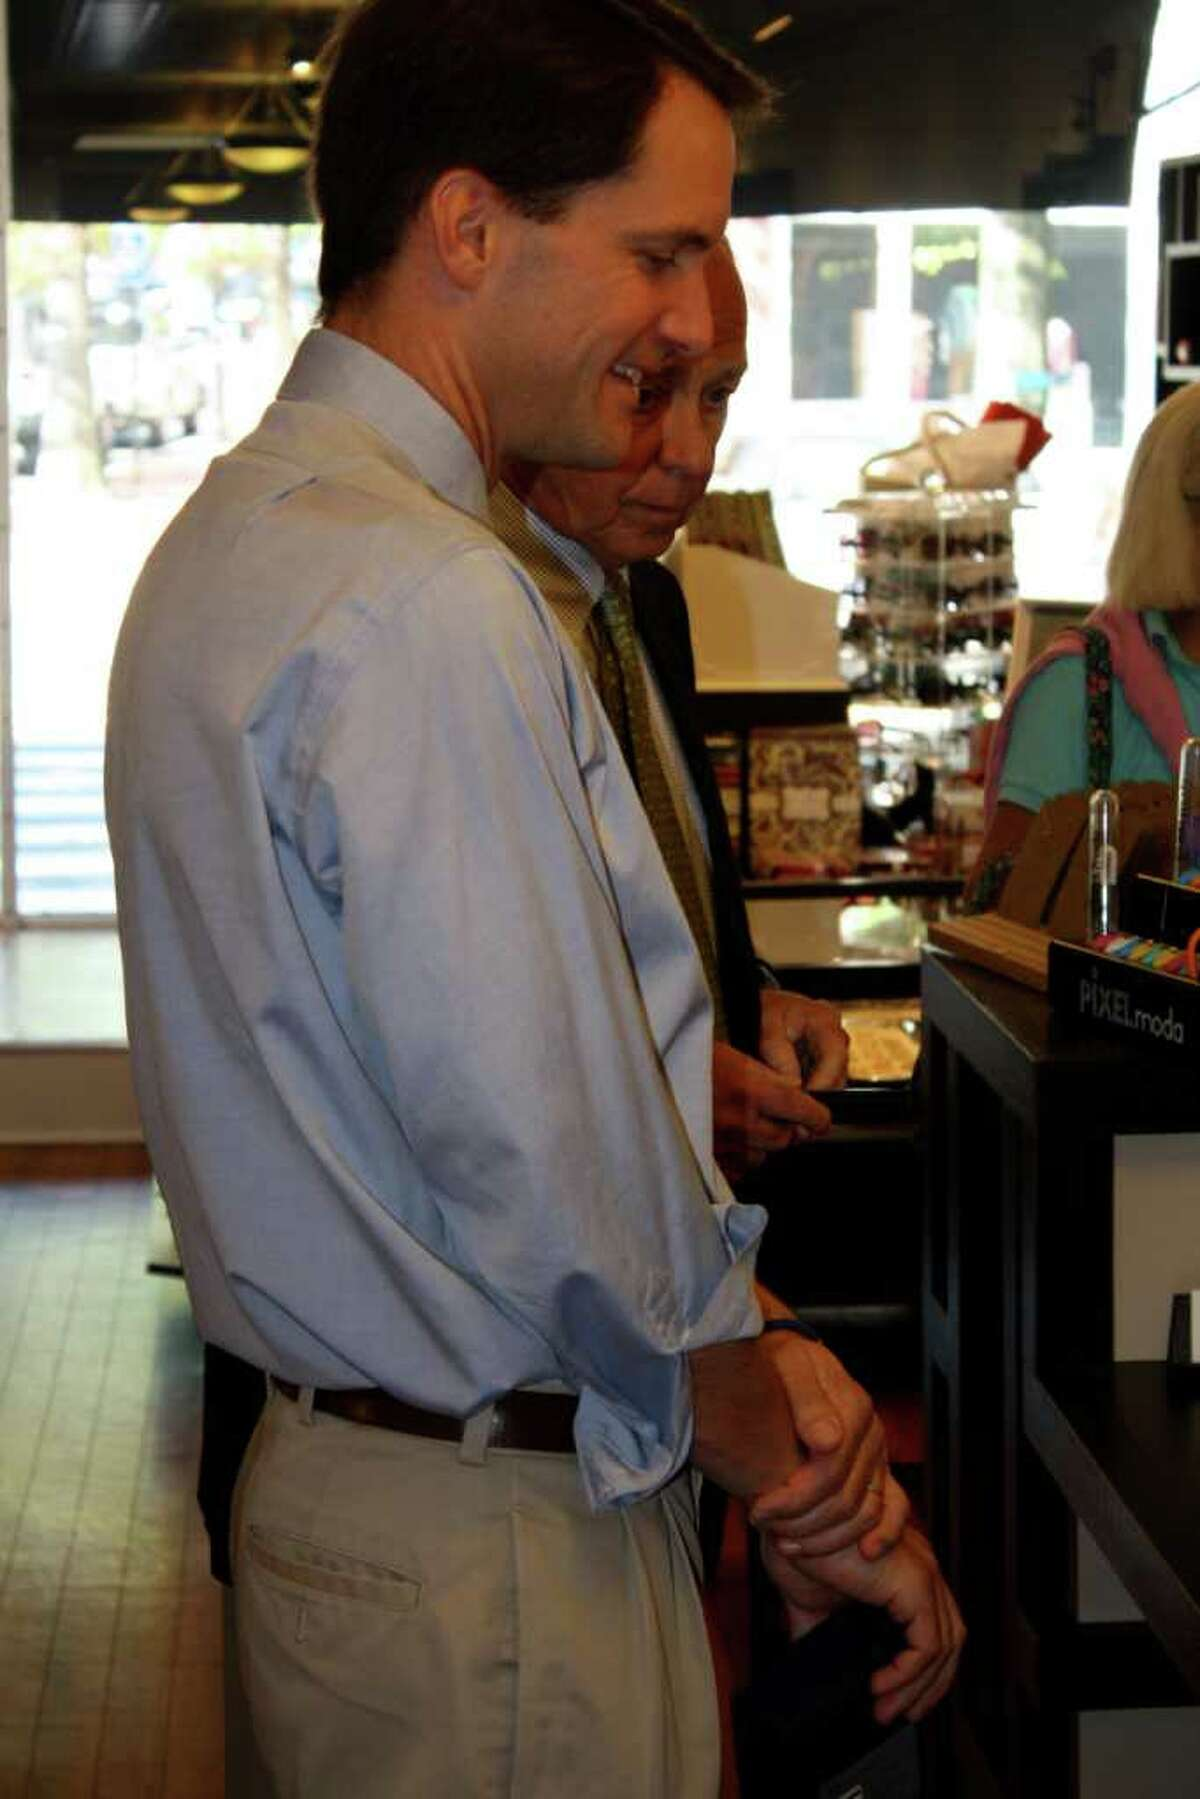 Rep. Jim Himes browses the inventory at M Milestones.